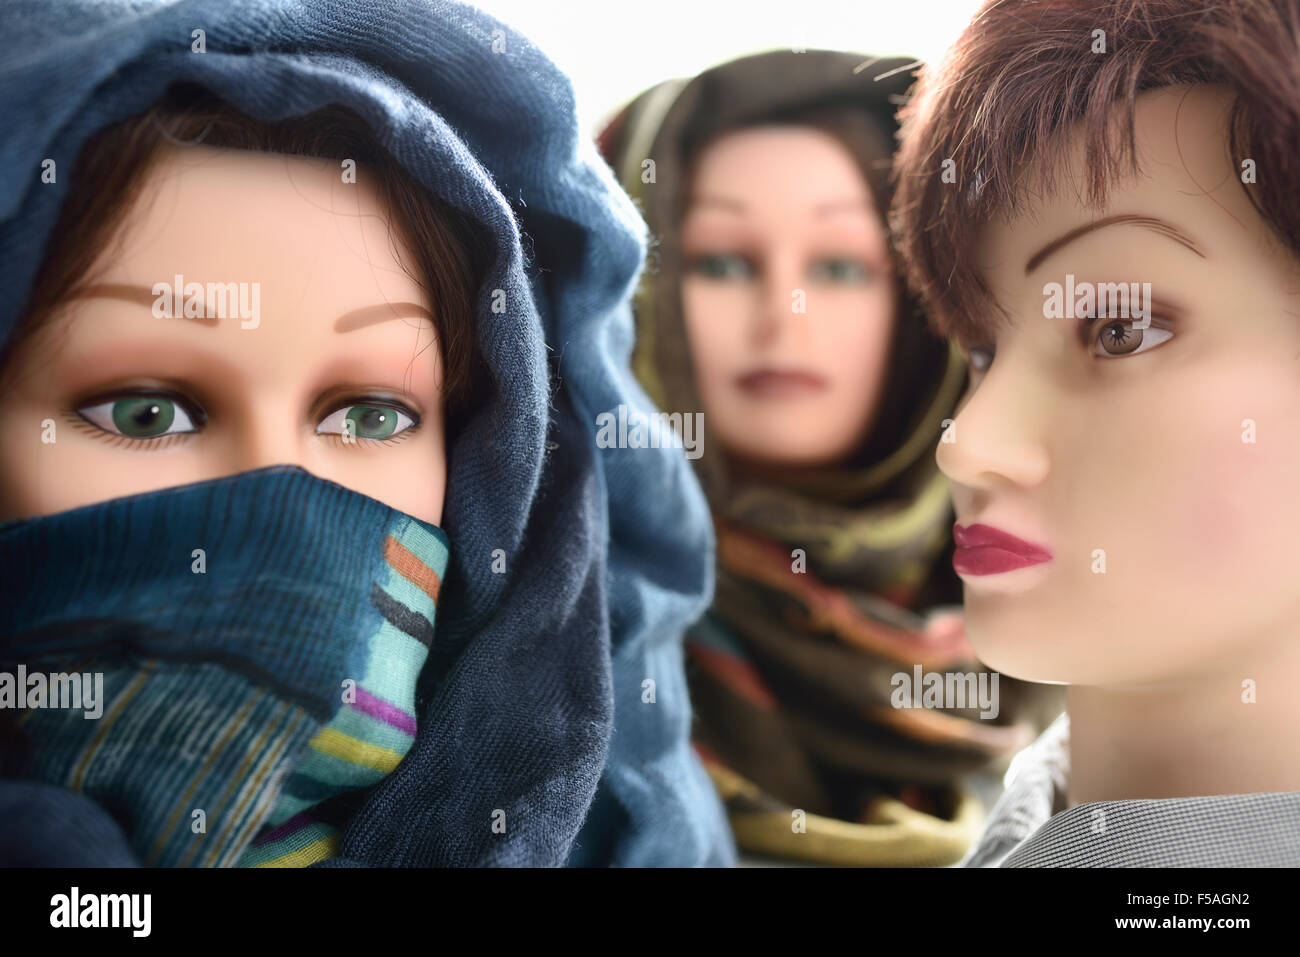 Two mannequin heads in hijabs and one without - Stock Image